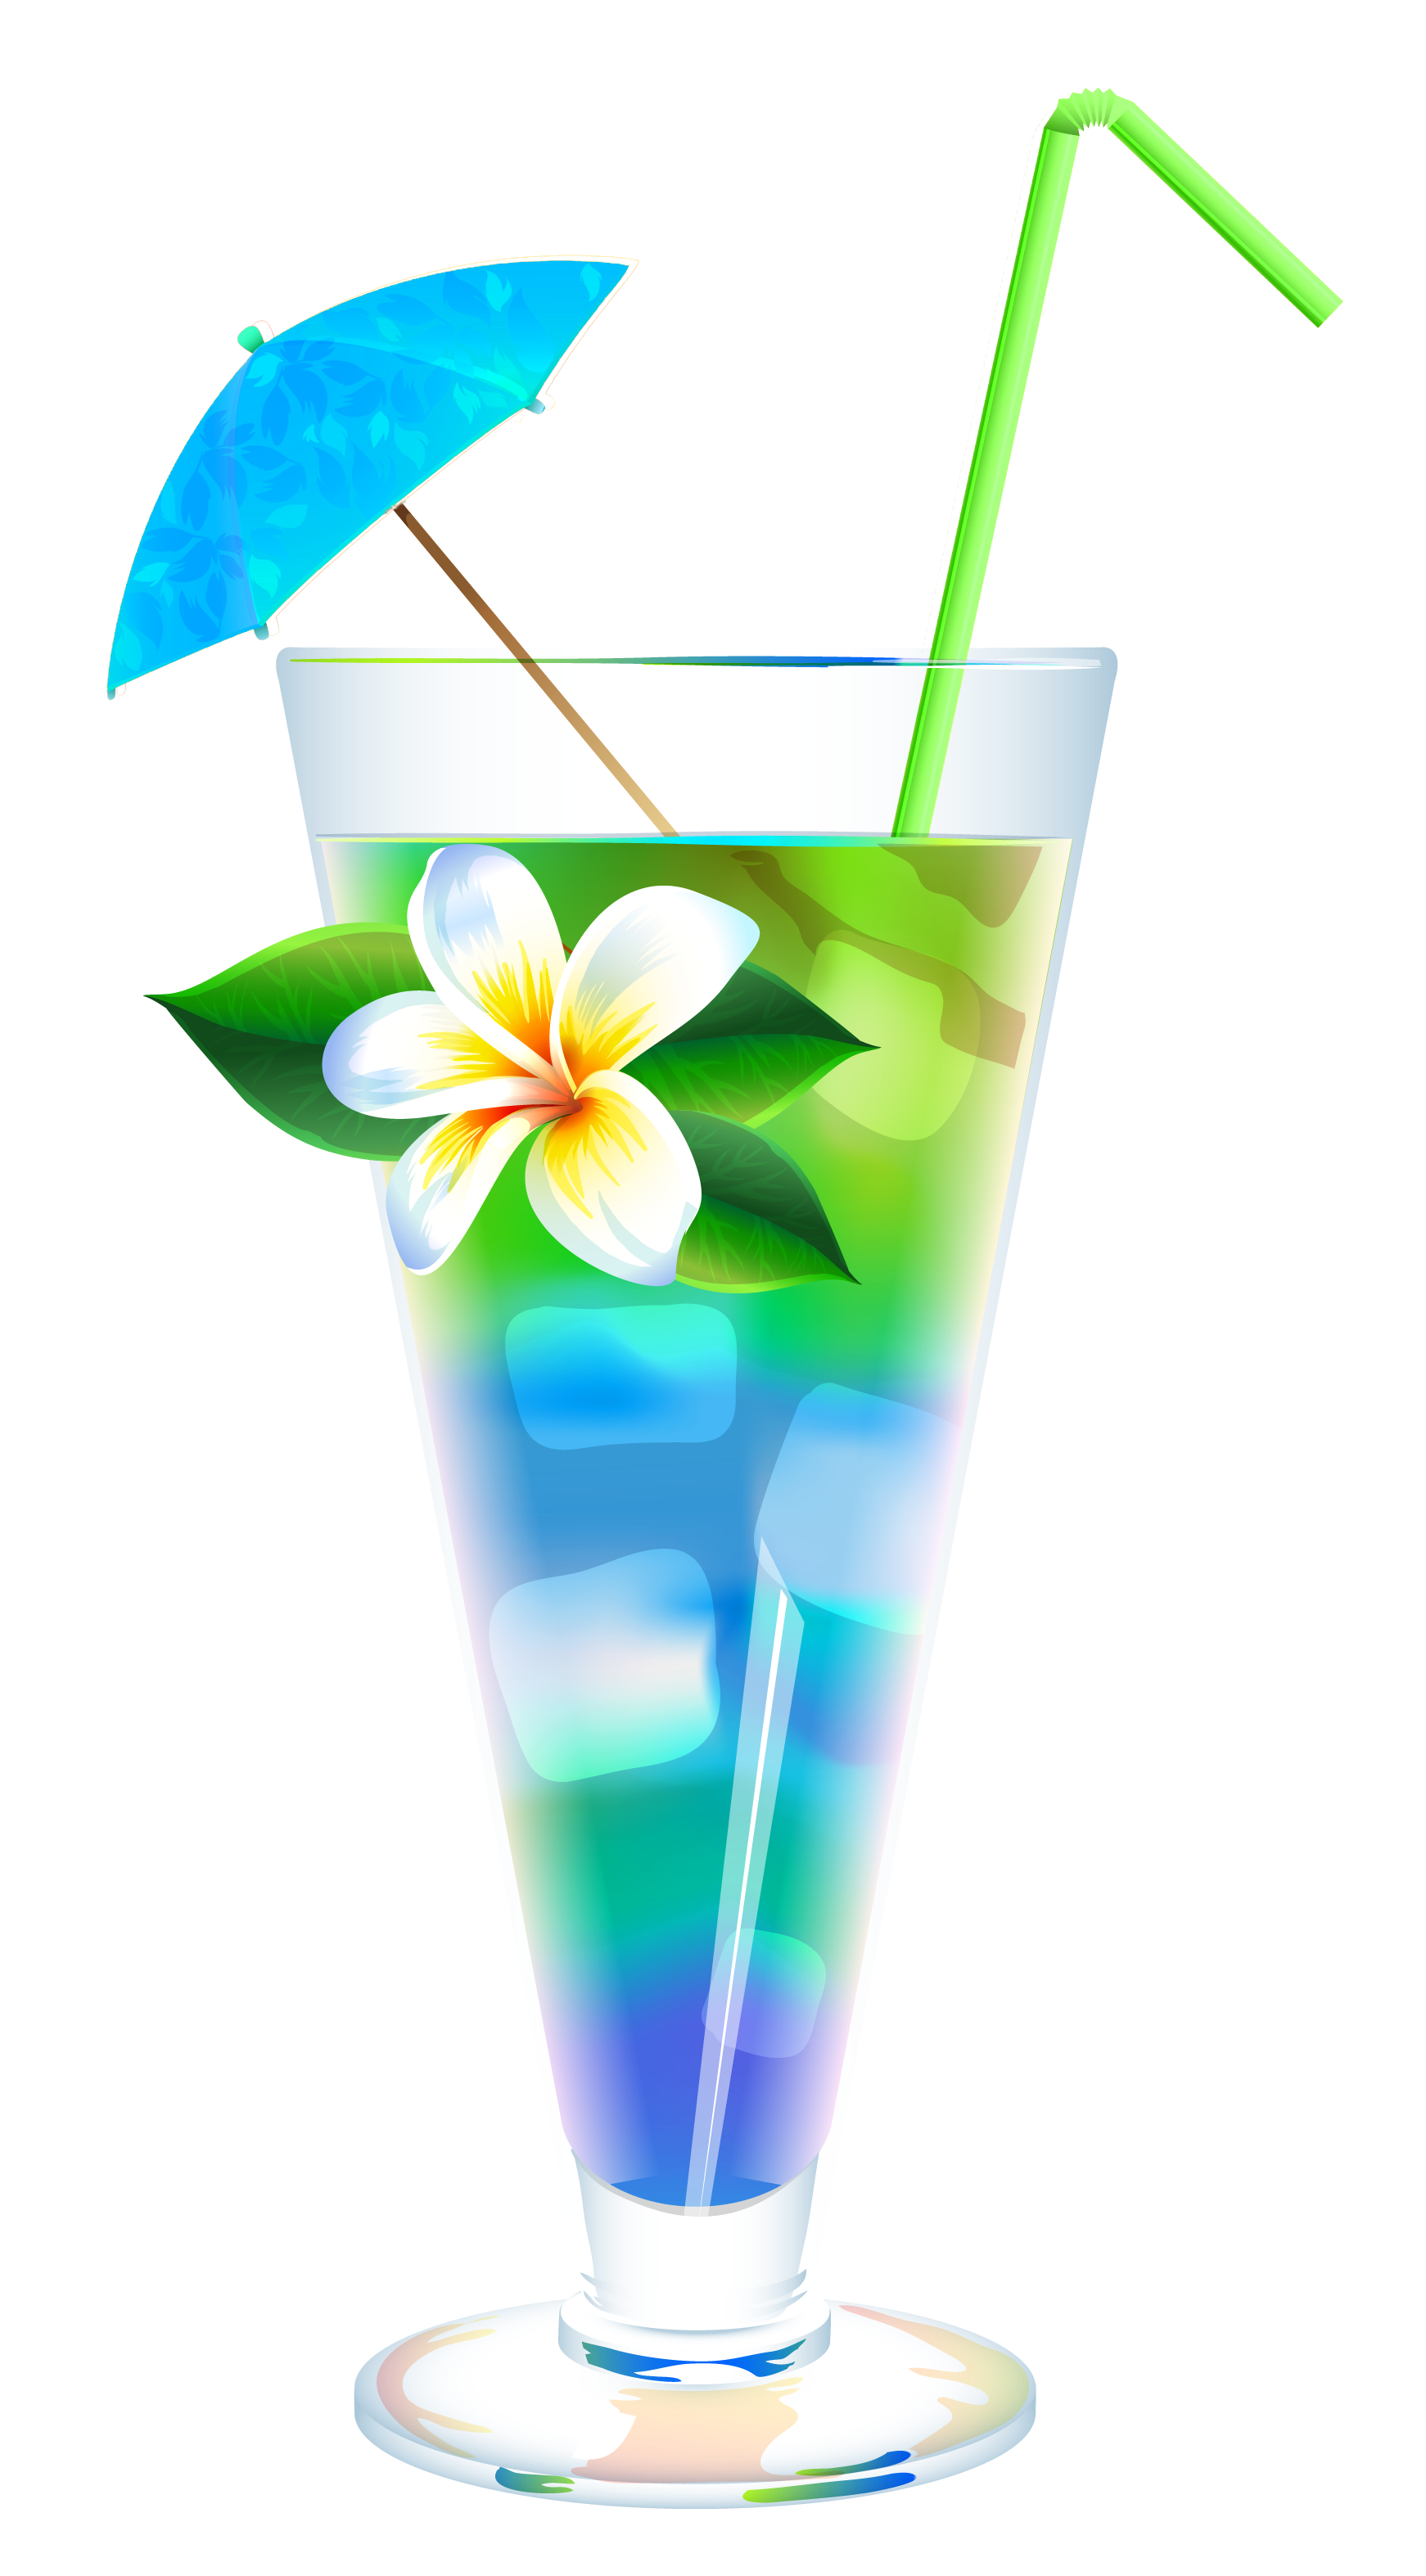 Sun with a drink clipart clip art freeuse library Exotic Summer Cocktail PNG Clipart Image | Clip Art Drinks, Ice ... clip art freeuse library